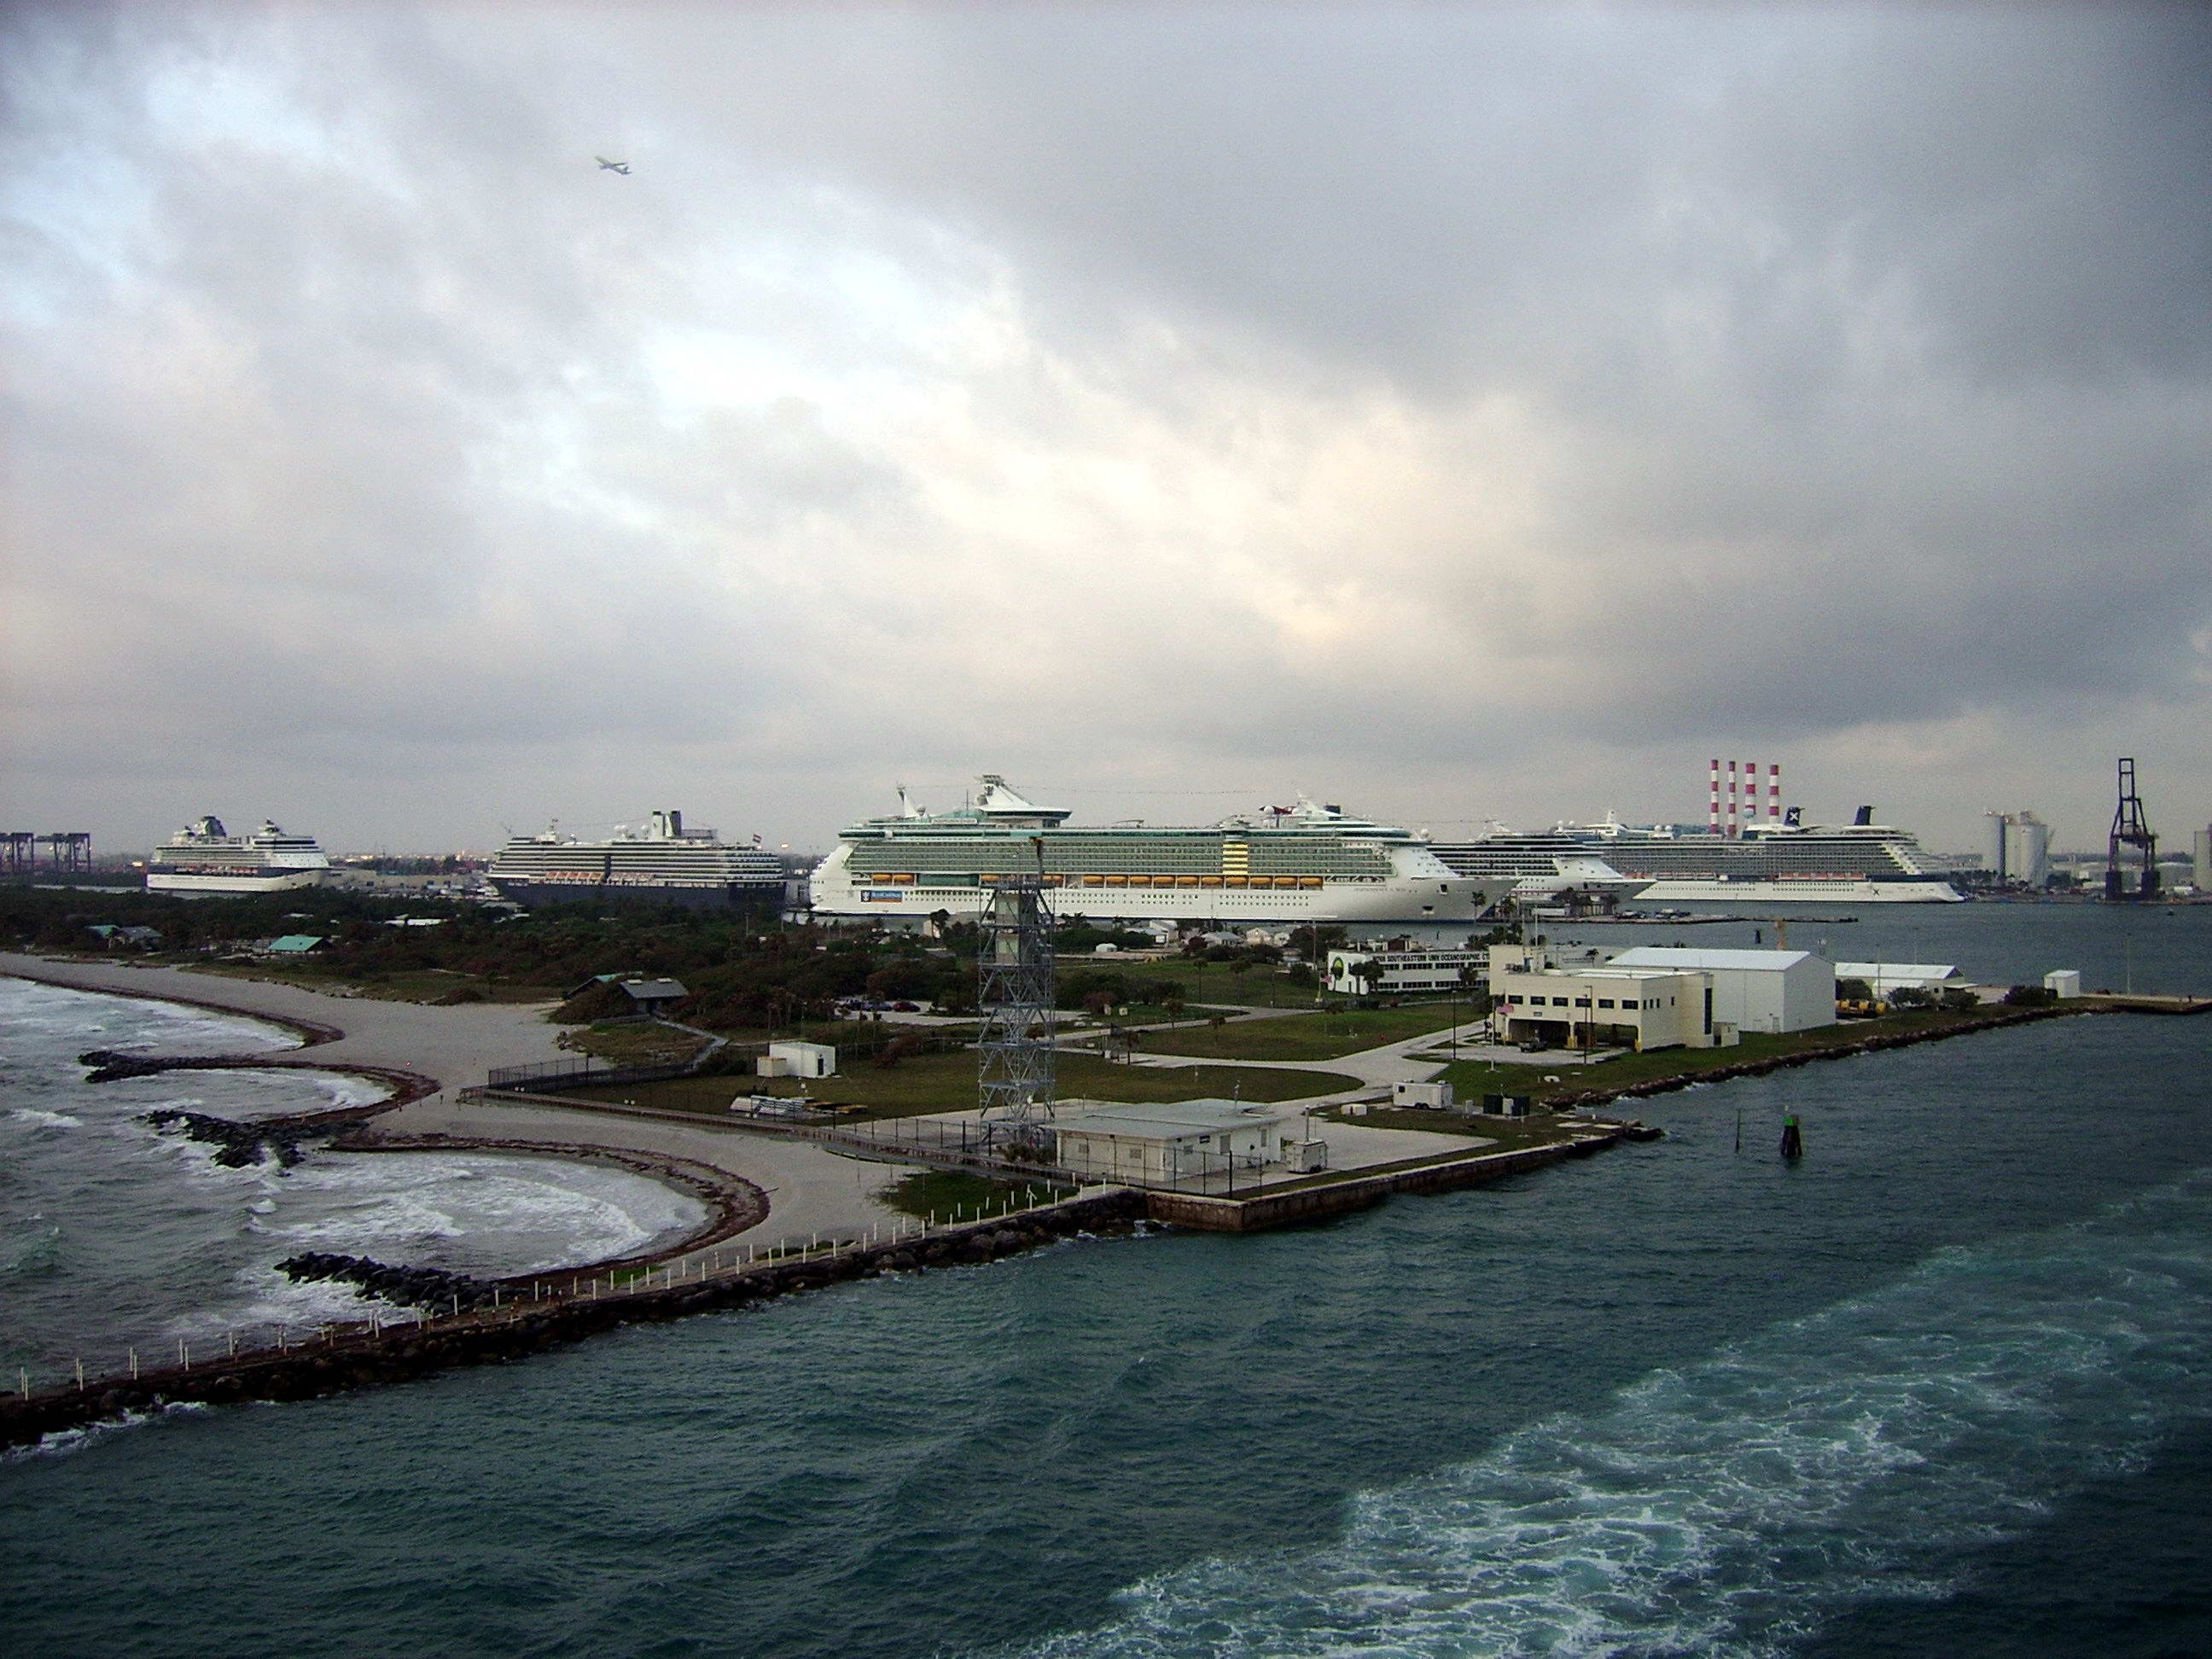 Port Everglades, FL, U.S.A.